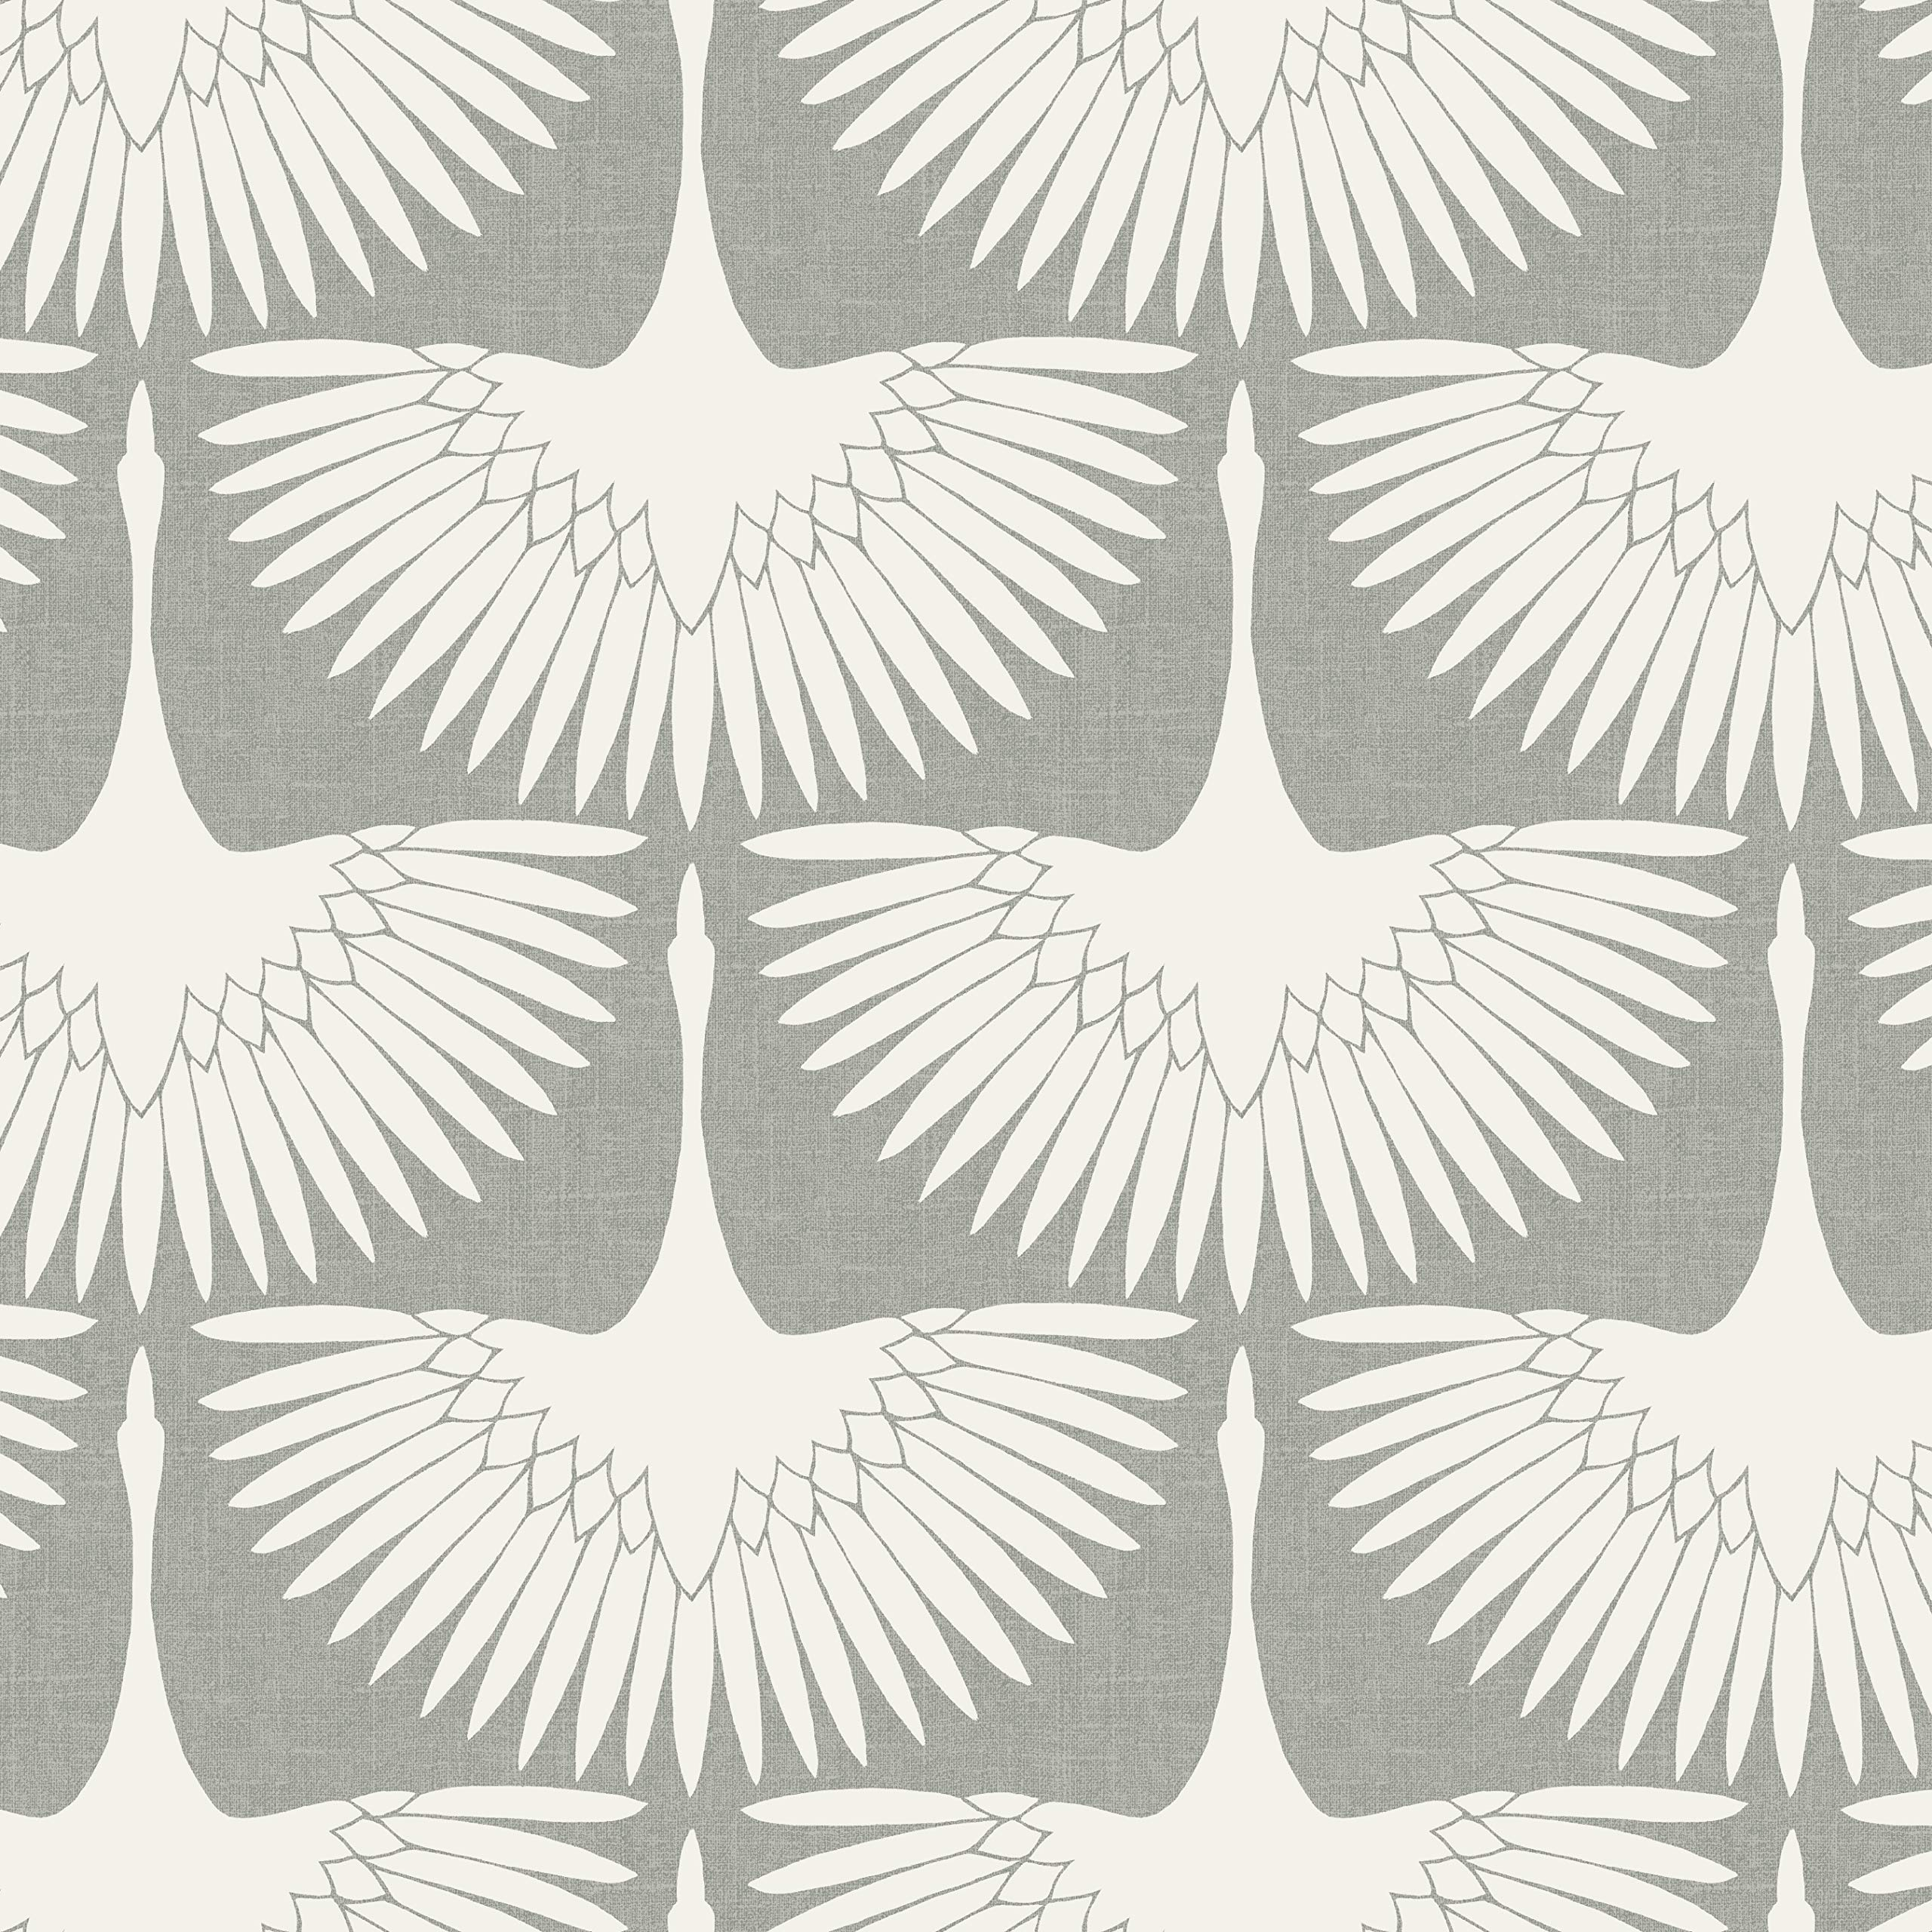 Tempaper Chalk  Feather Flock | Designer Removable Peel and Stick Wallpaper by Tempaper